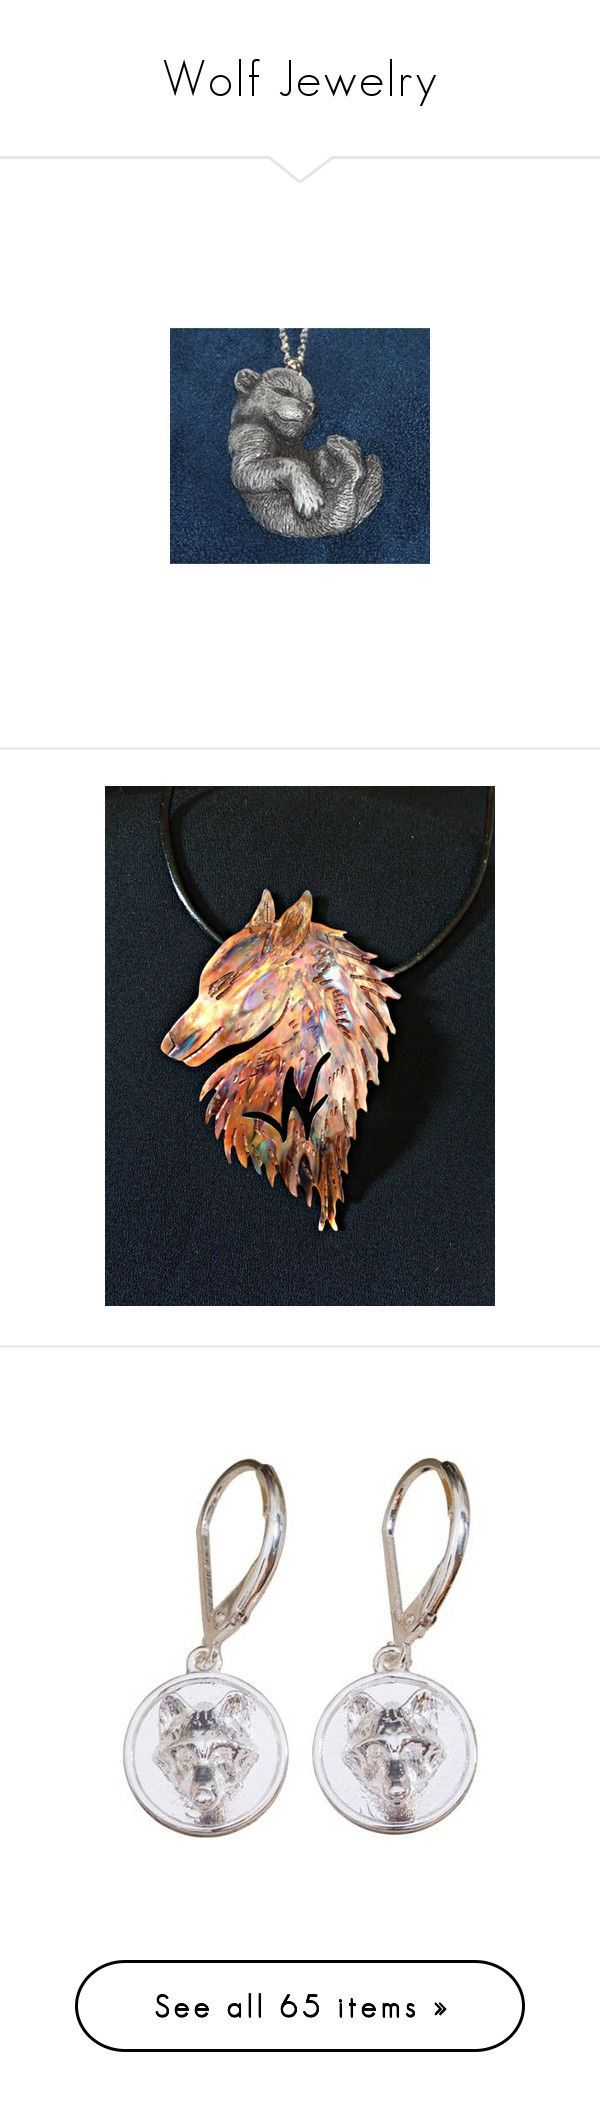 """Wolf Jewelry"" by thesassystewart ❤ liked on Polyvore featuring jewelry, necklaces, wolf necklace, wolf jewelry, earrings, earring jewelry, silver jewellery, polish jewelry, silver disc earrings and accessories"